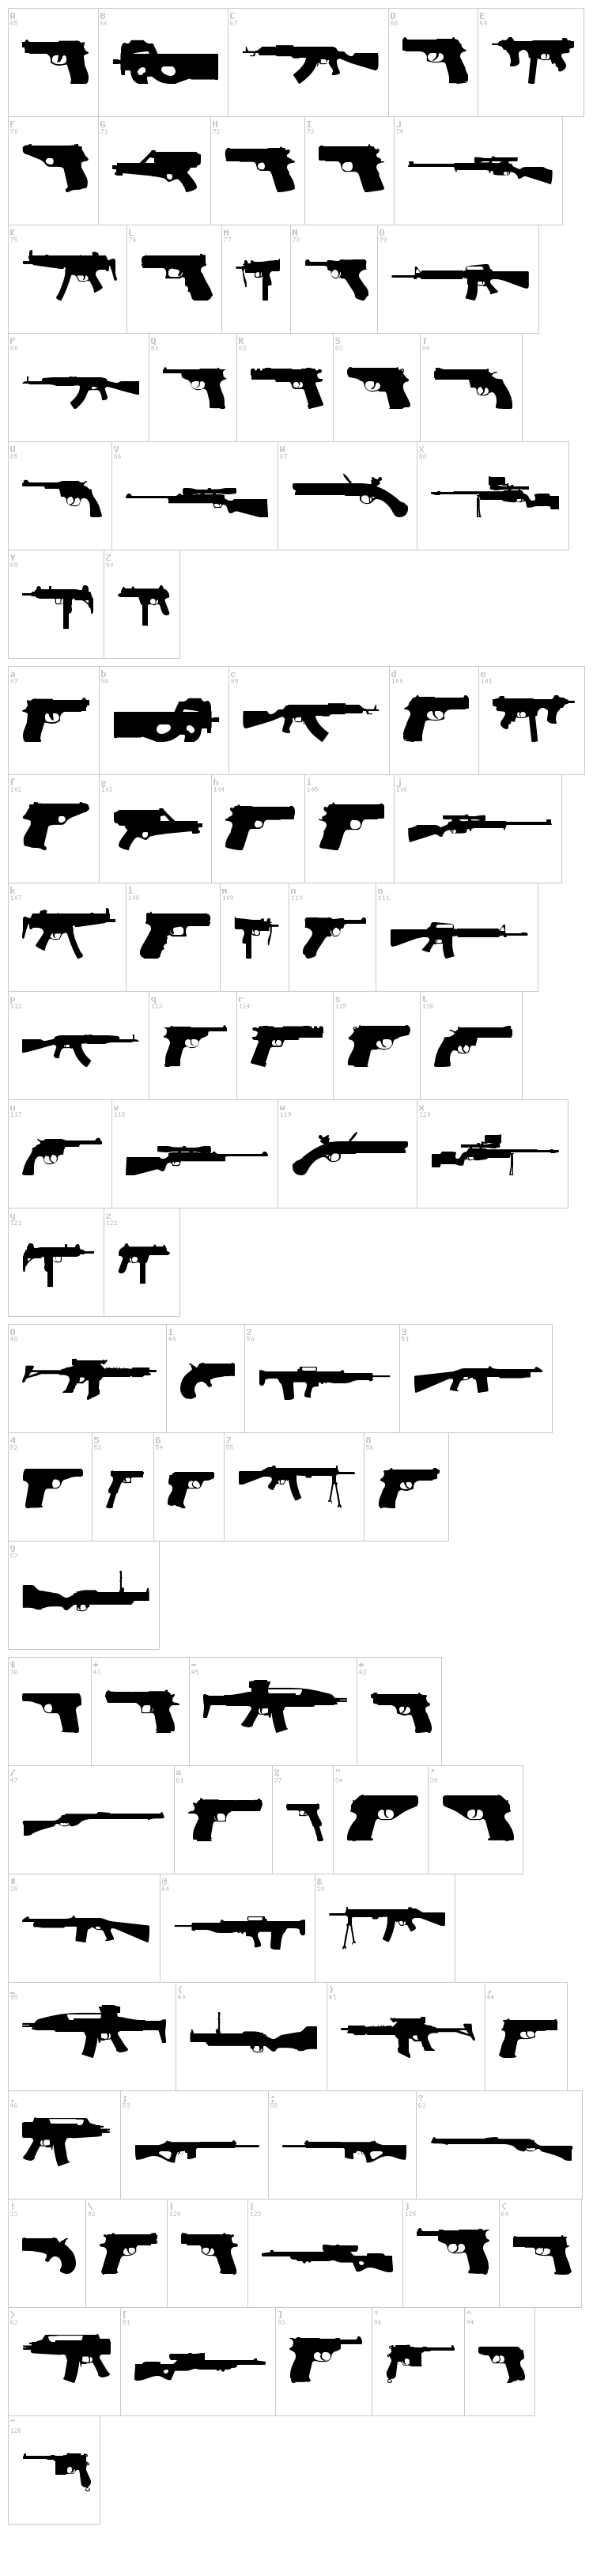 2nd Amendment font map